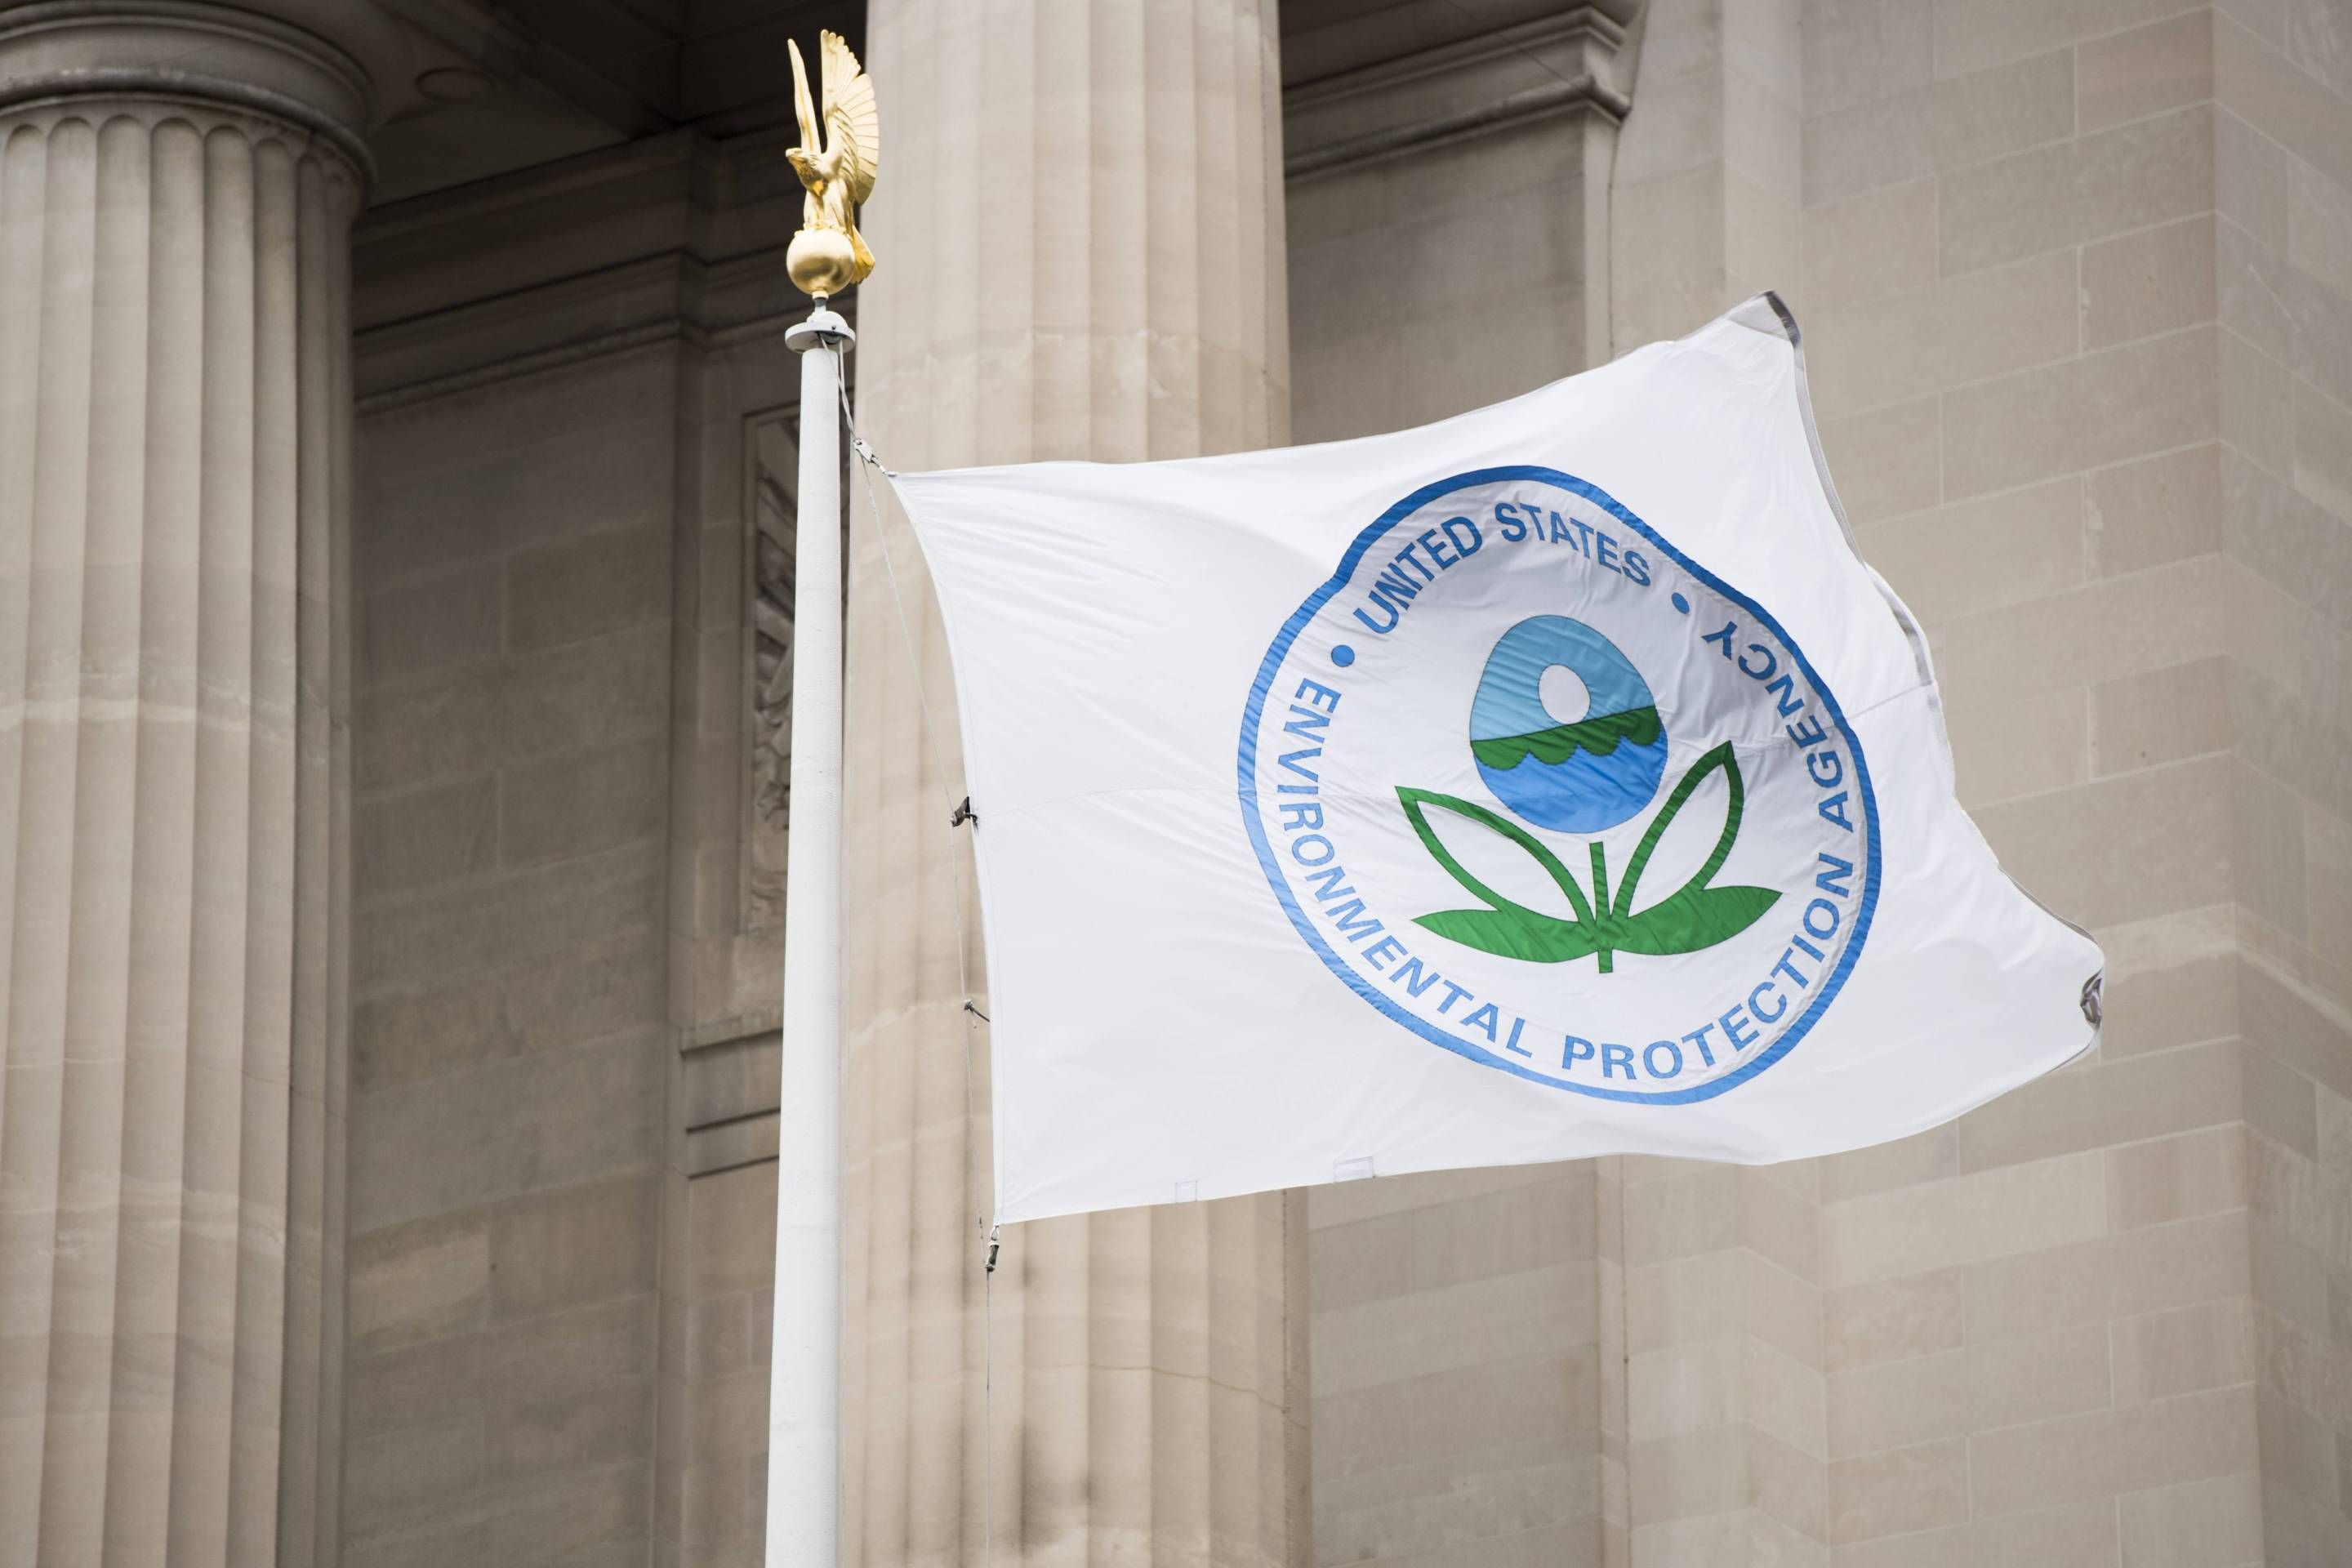 EPA Action Against Polluters Hits 30-Year Low